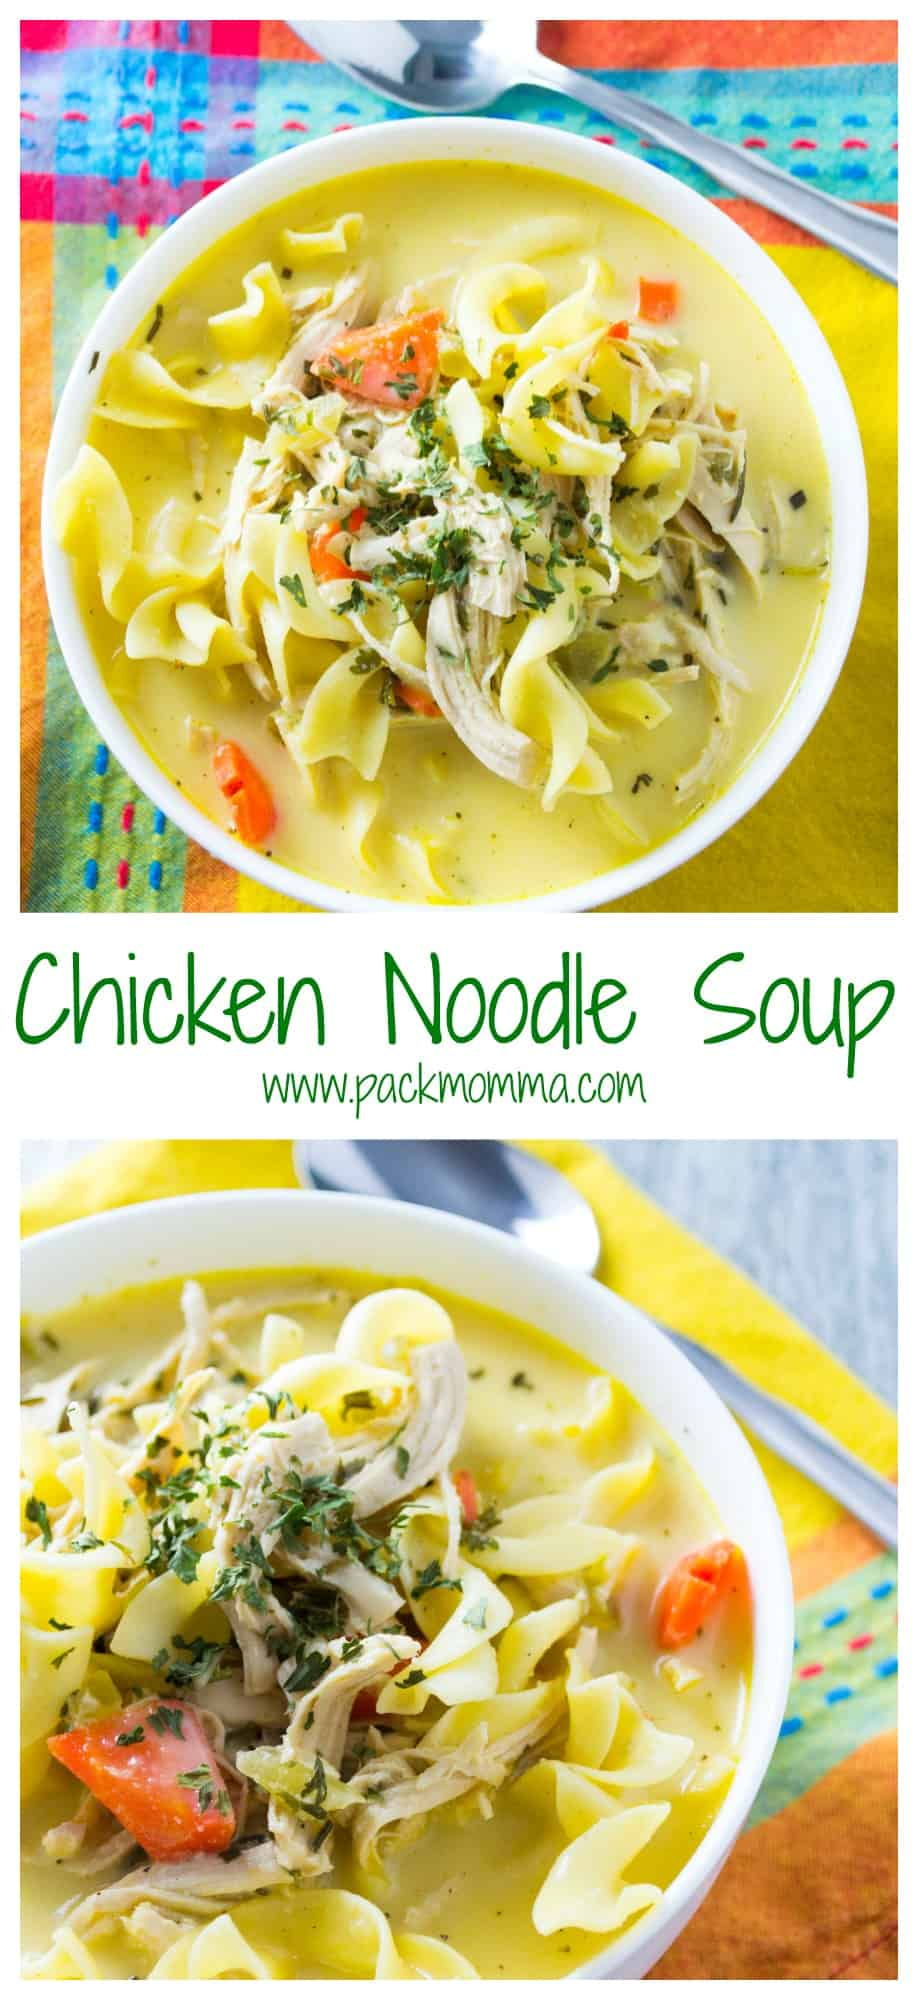 Easy Homemade Chicken Noodle Soup | This Easy Homemade Chicken Noodle Soupis definitely not the can of soup from your childhood. Hearty, creamy and nutritious, this soup will make being a grown up worth it! | Pack Momma | https://www.packmomma.com